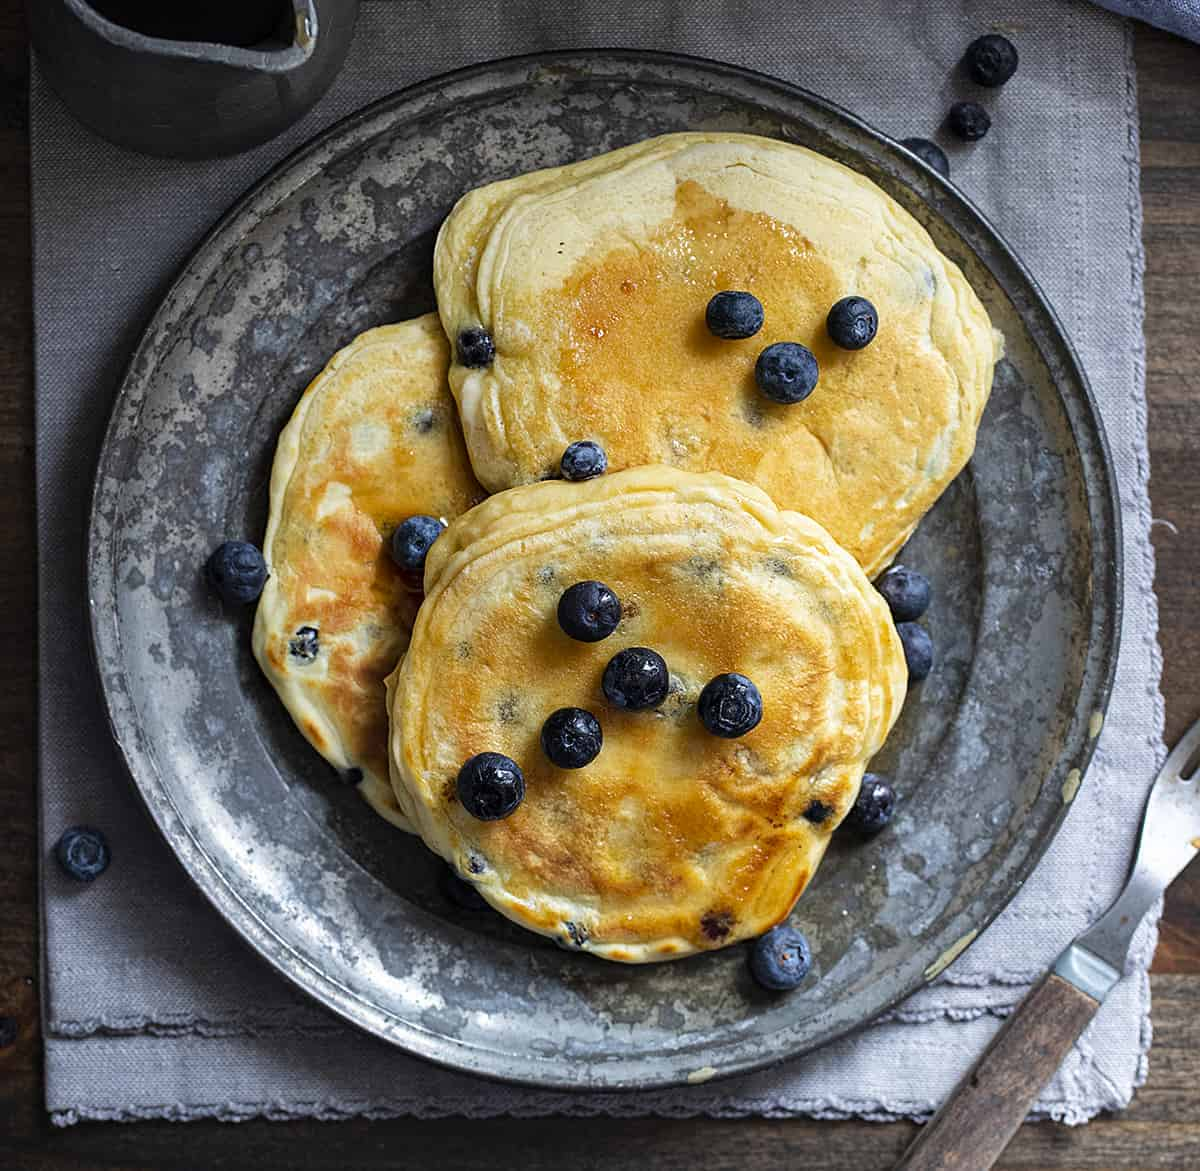 Overhead of Blueberry Sourdough Pancakes on Plate with Fork Next to It